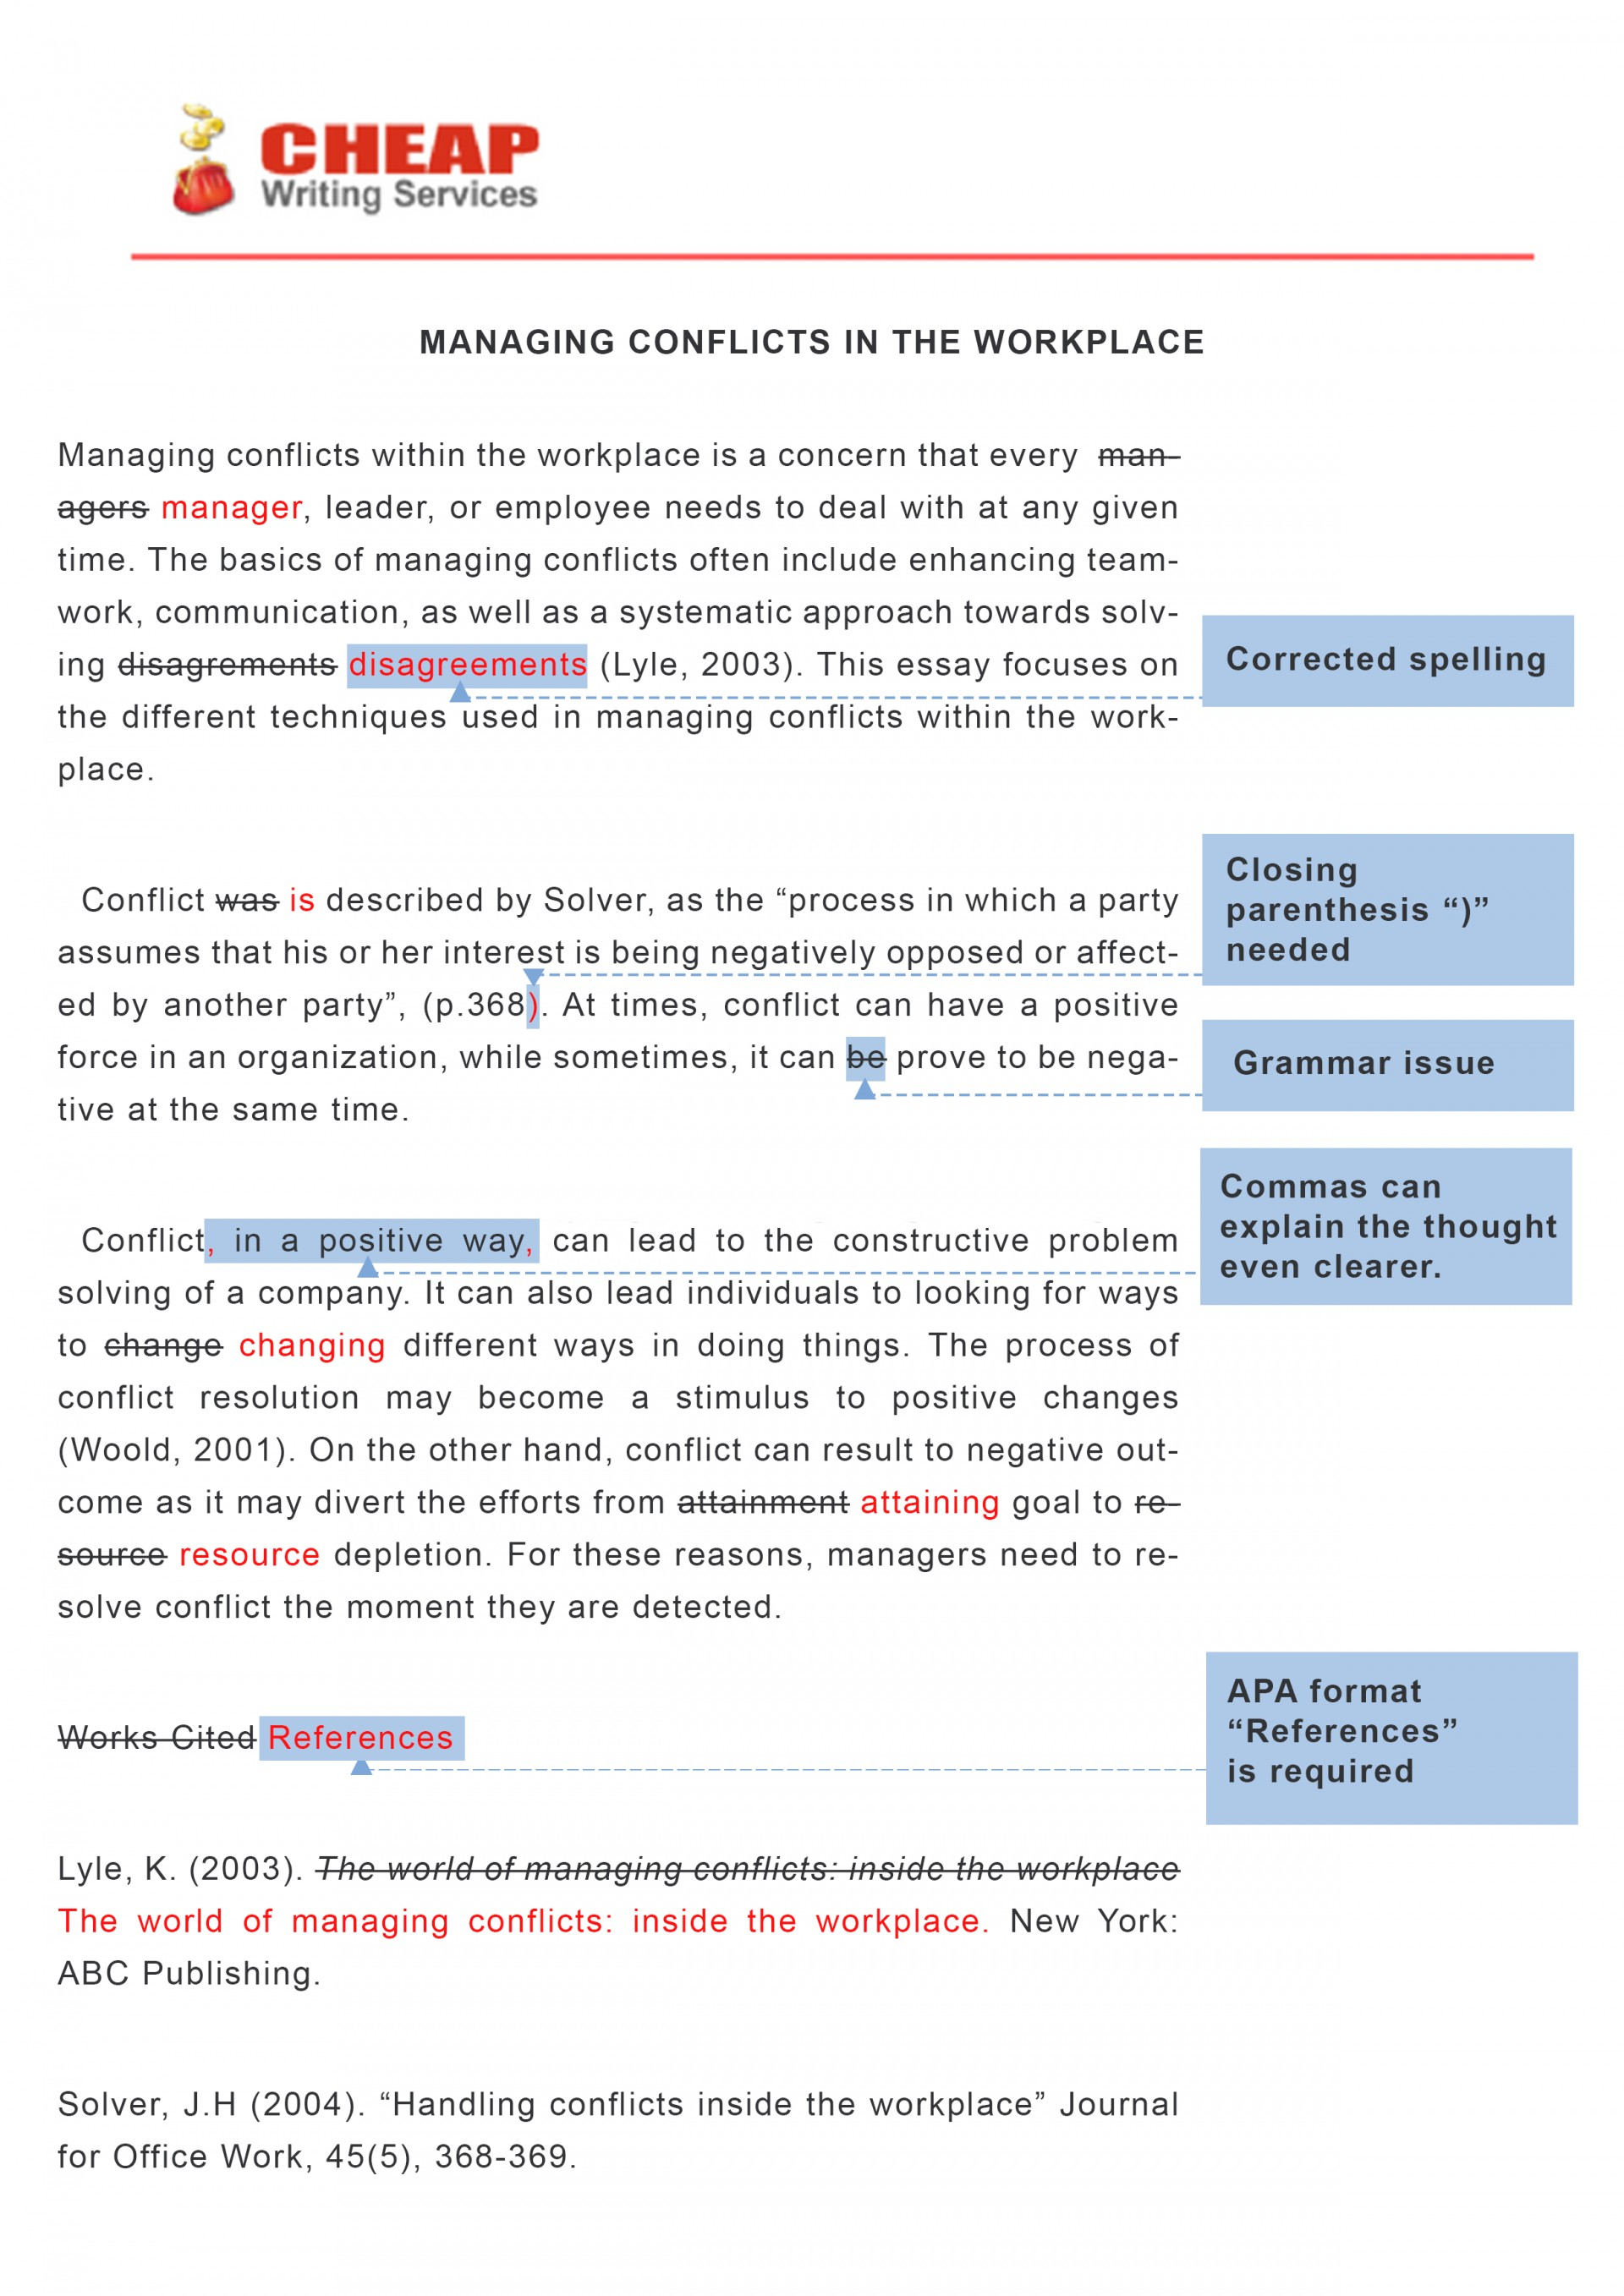 002 Essay Editing Example Cheap Beautiful Essays Paper Fast Essays.com 1920